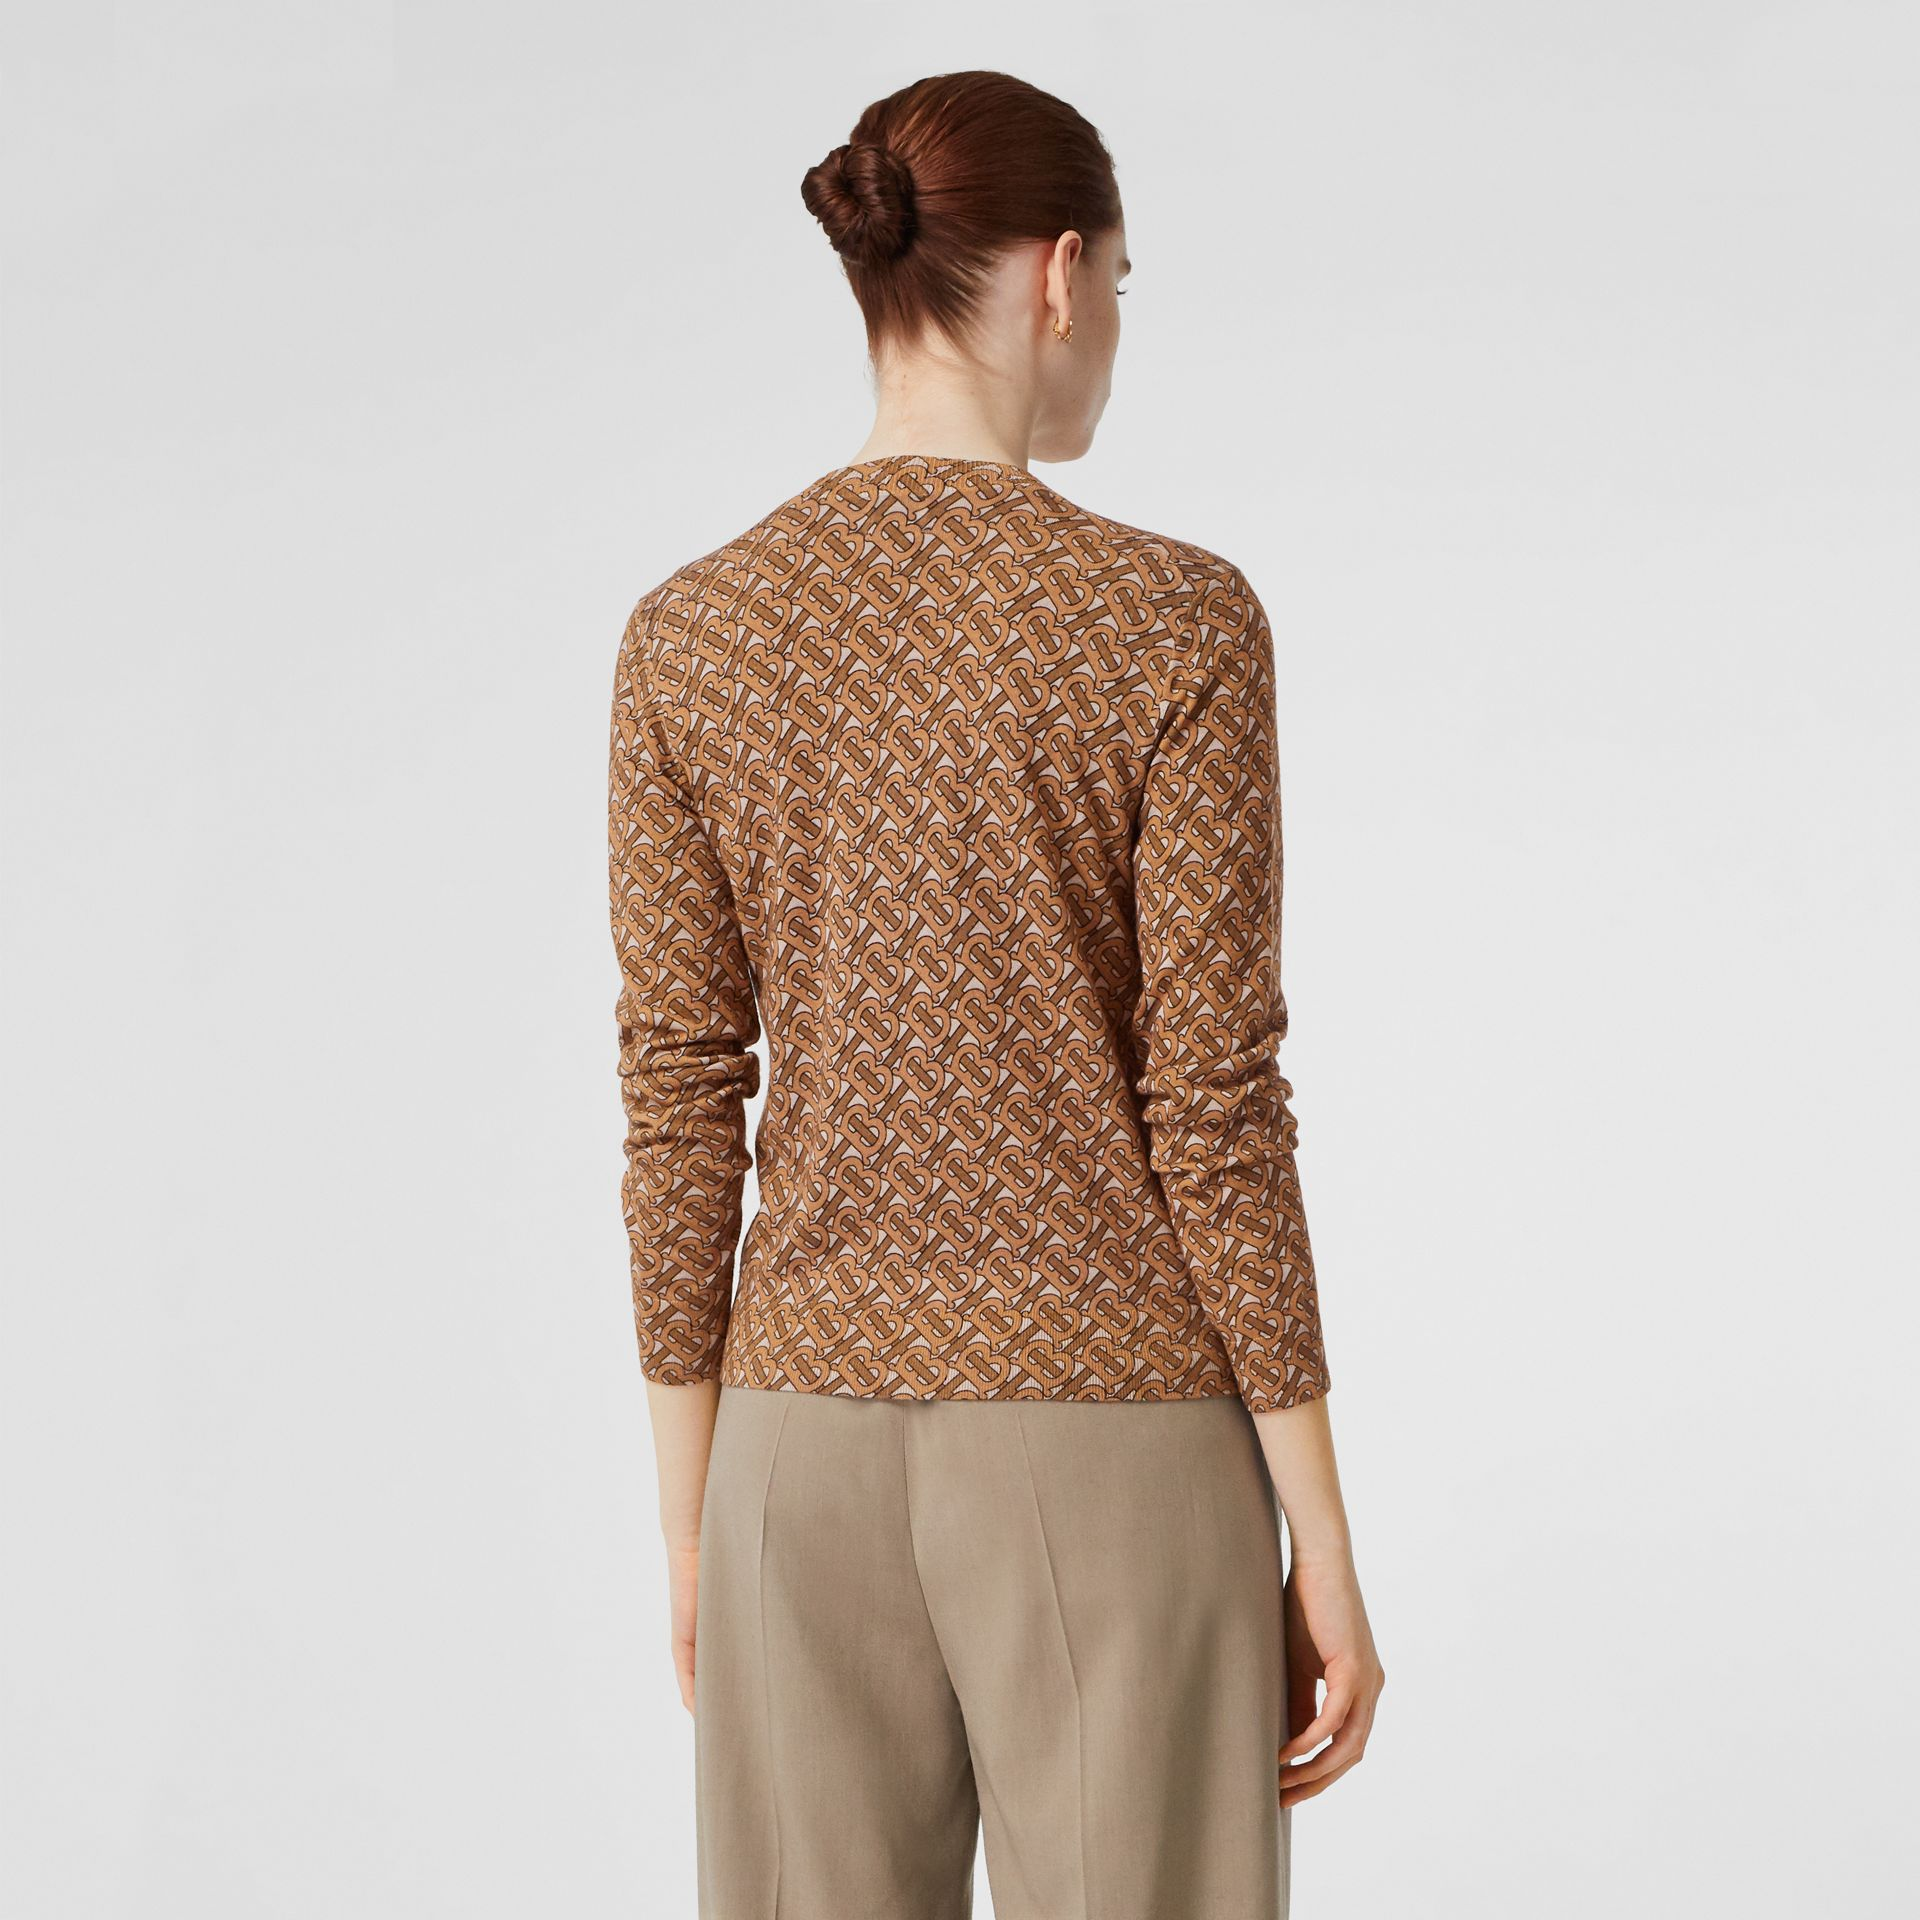 Monogram Print Merino Wool Cardigan in Beige - Women | Burberry United States - gallery image 2